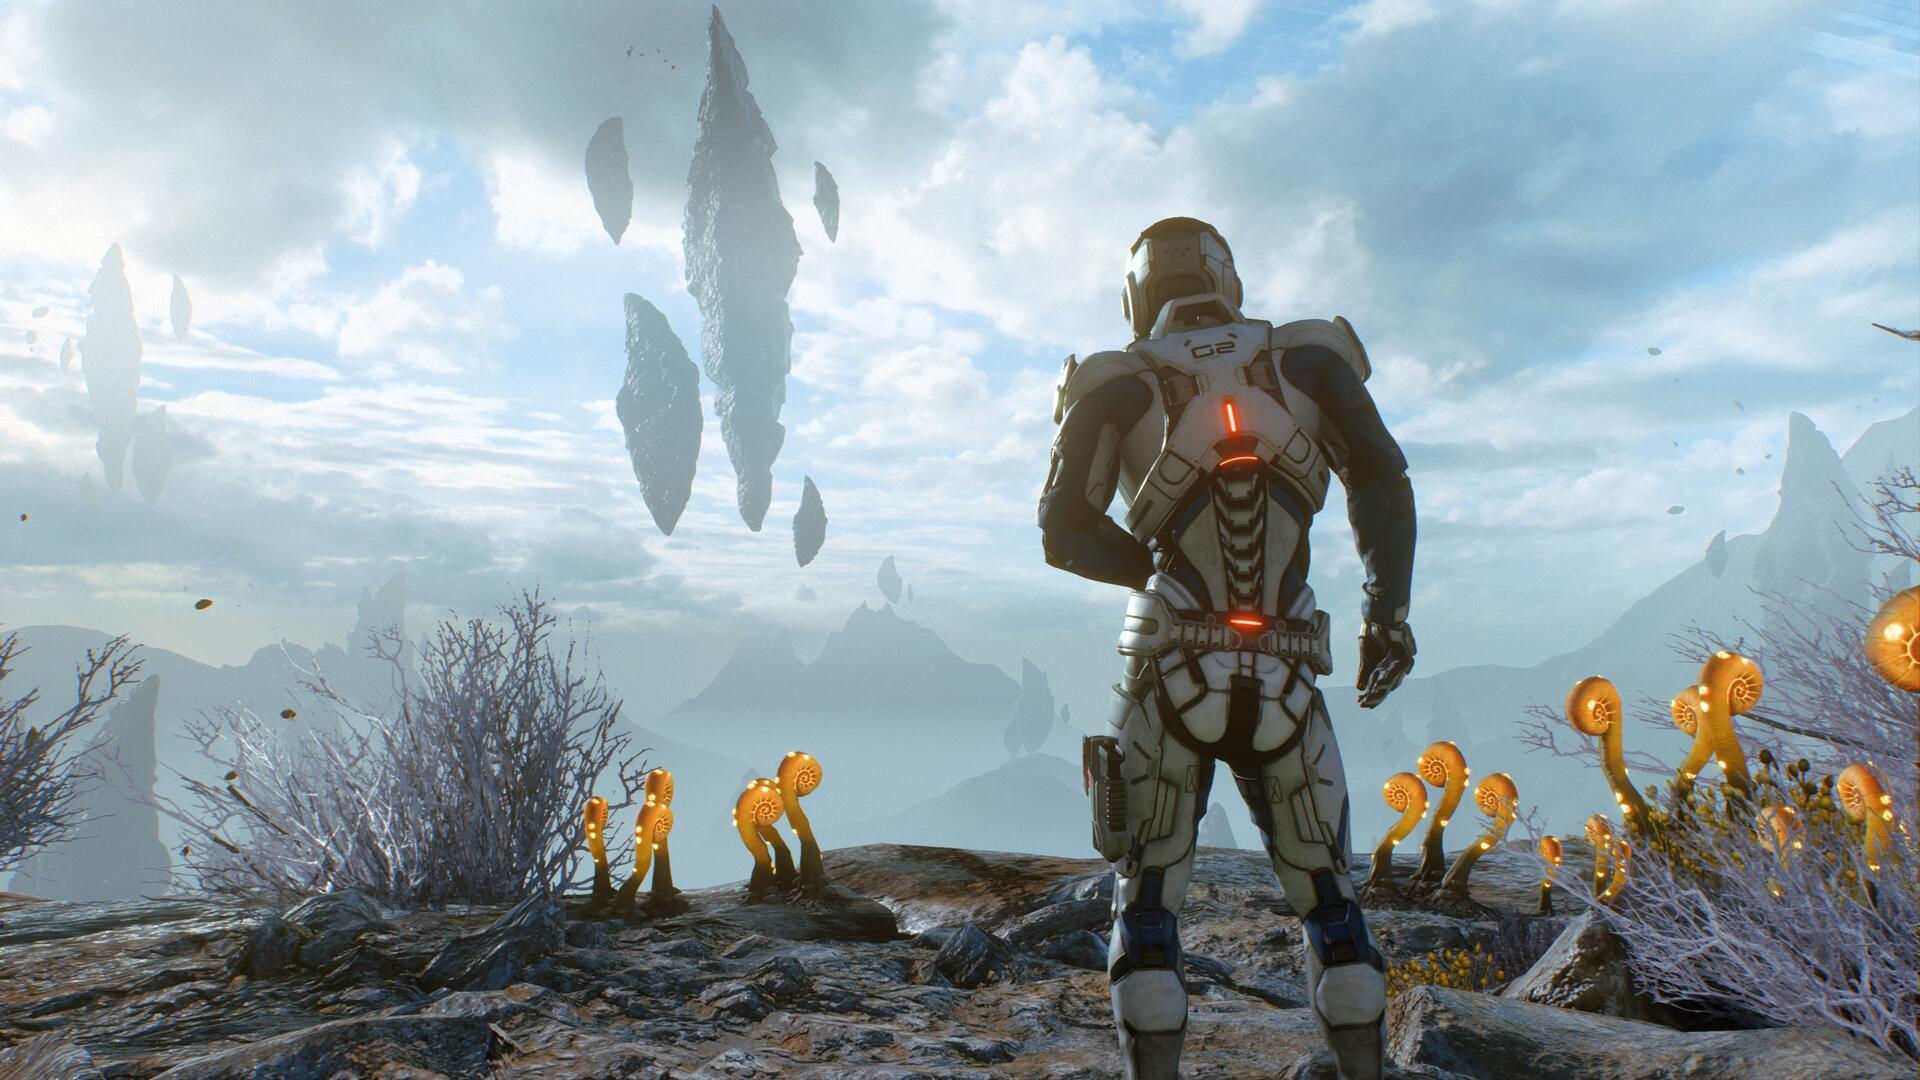 Mass Effect Andromeda Walkthrough - Romance, Puzzles, Missions and More